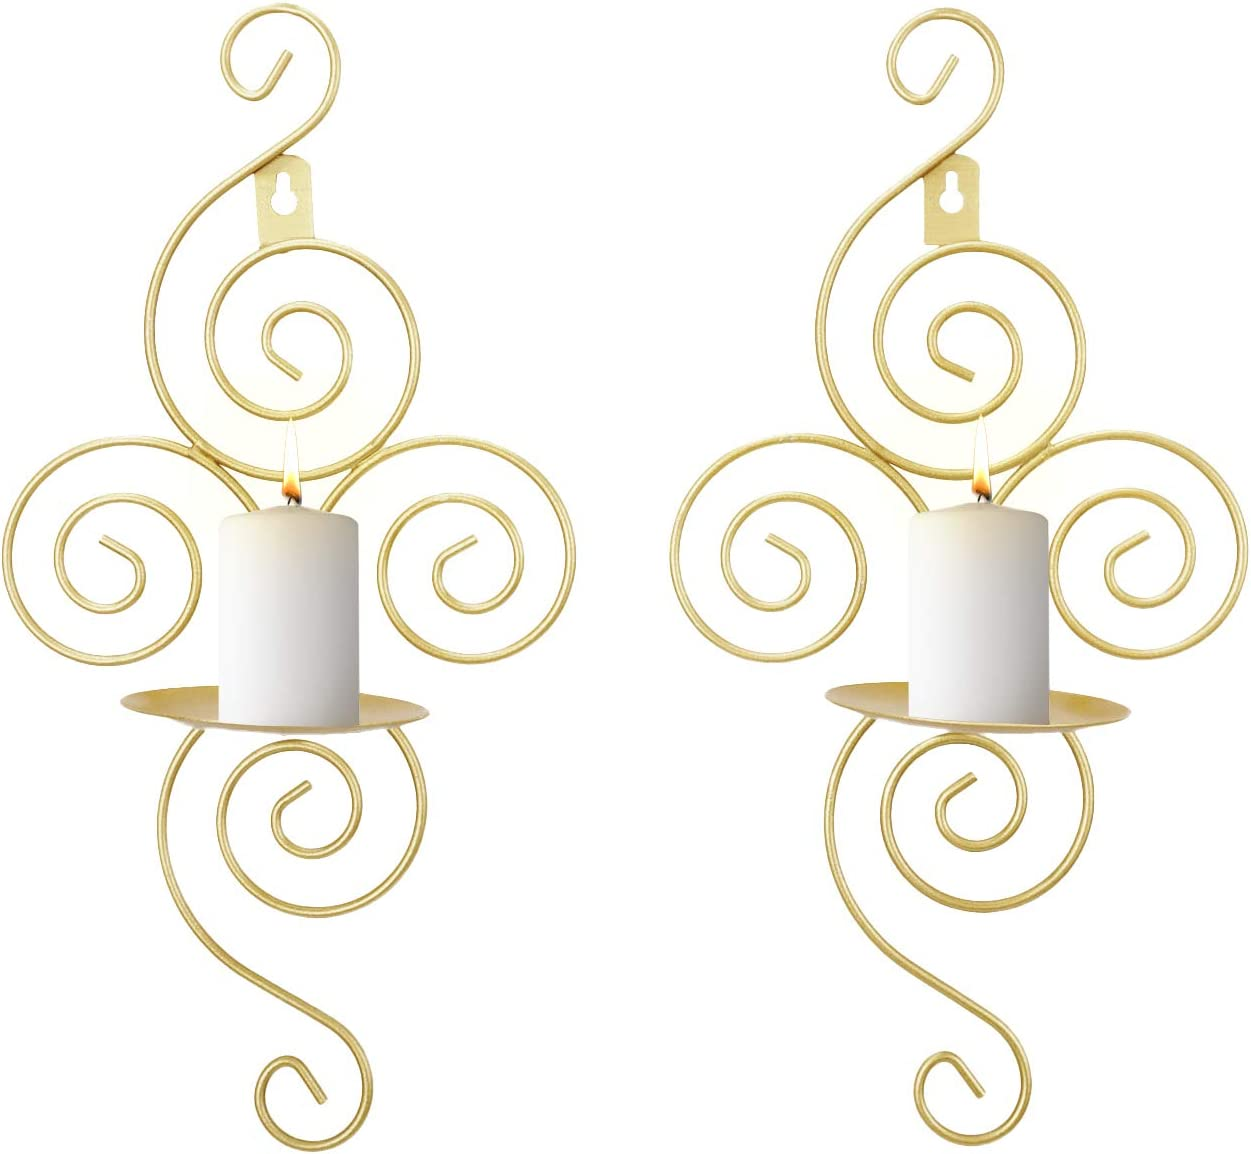 Dyna-Living Wall Candle Sconces Elegant Hanging Wall Sconces Set of Two Gold Candle Holder for Home Decor Weddings Porch Yard Pathway Lighting